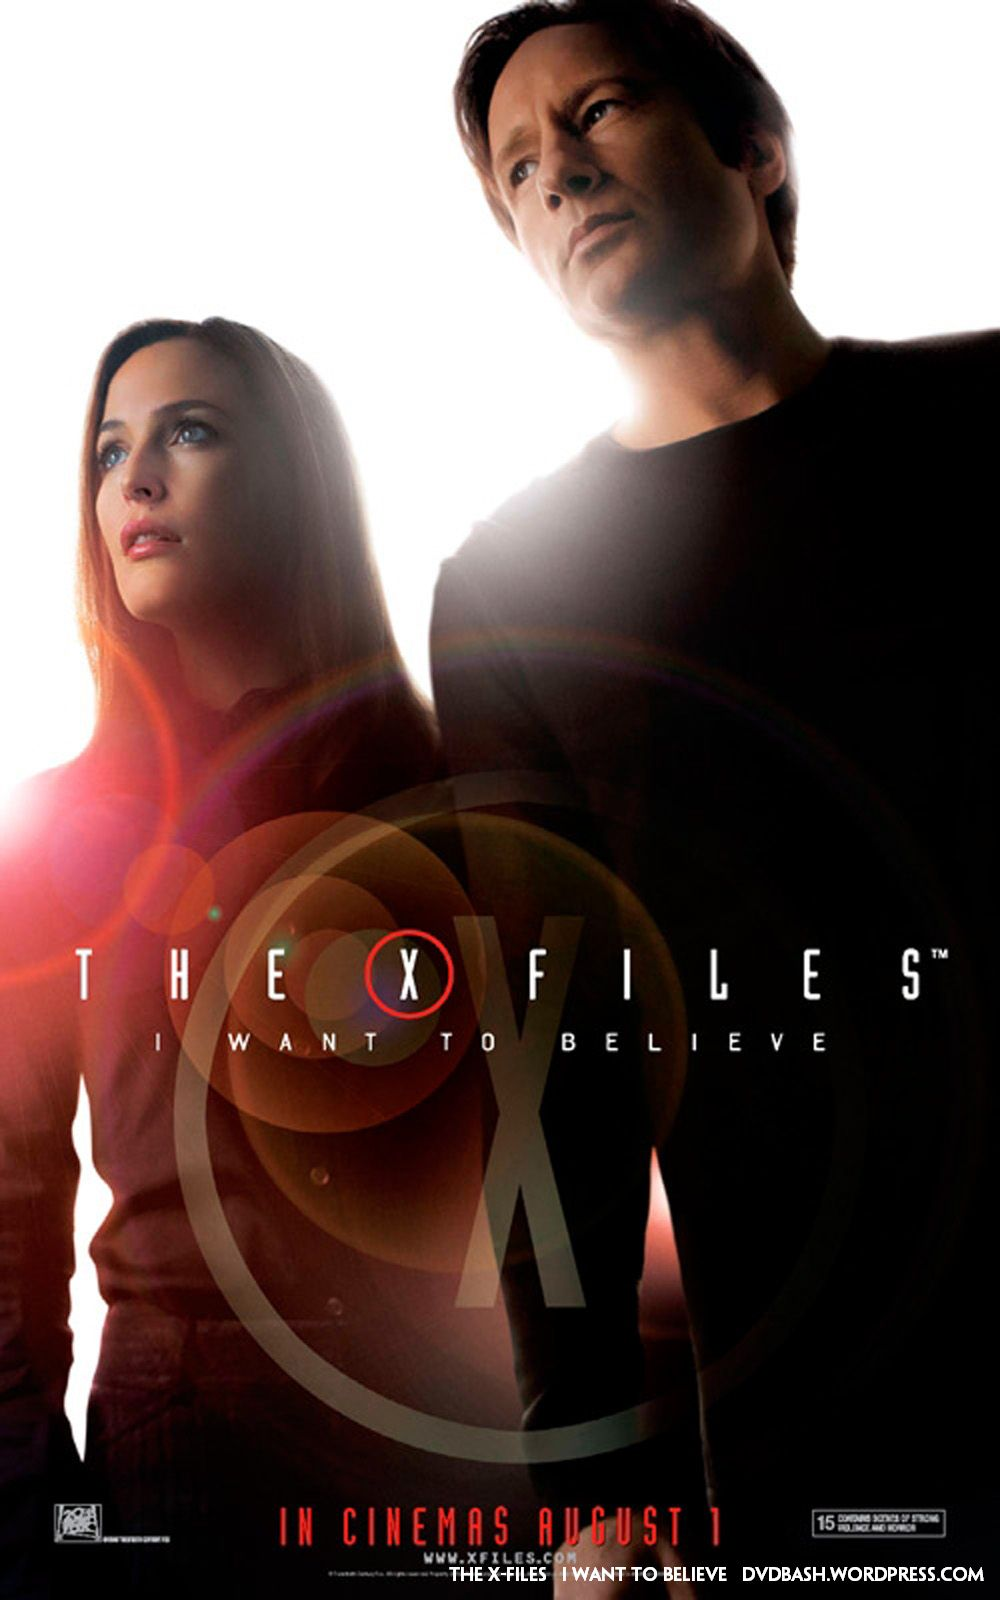 The X-Files Movie I Want to Believe 2008 | DVDbash